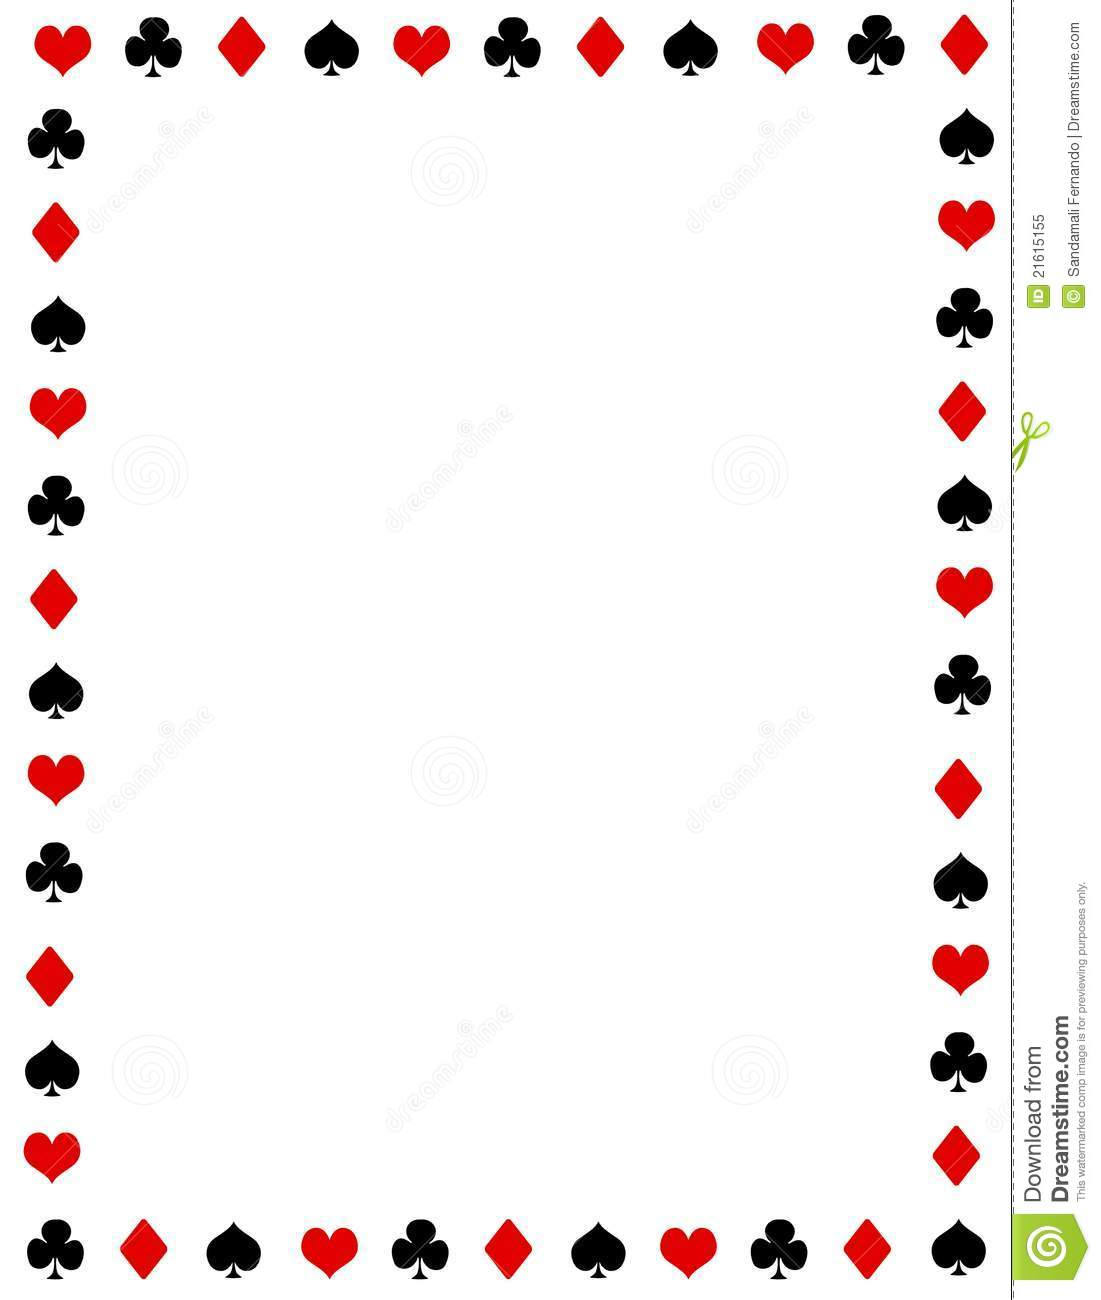 1101x1300 Playing Card Images Free Poker Border Frame Royalty Free Stock